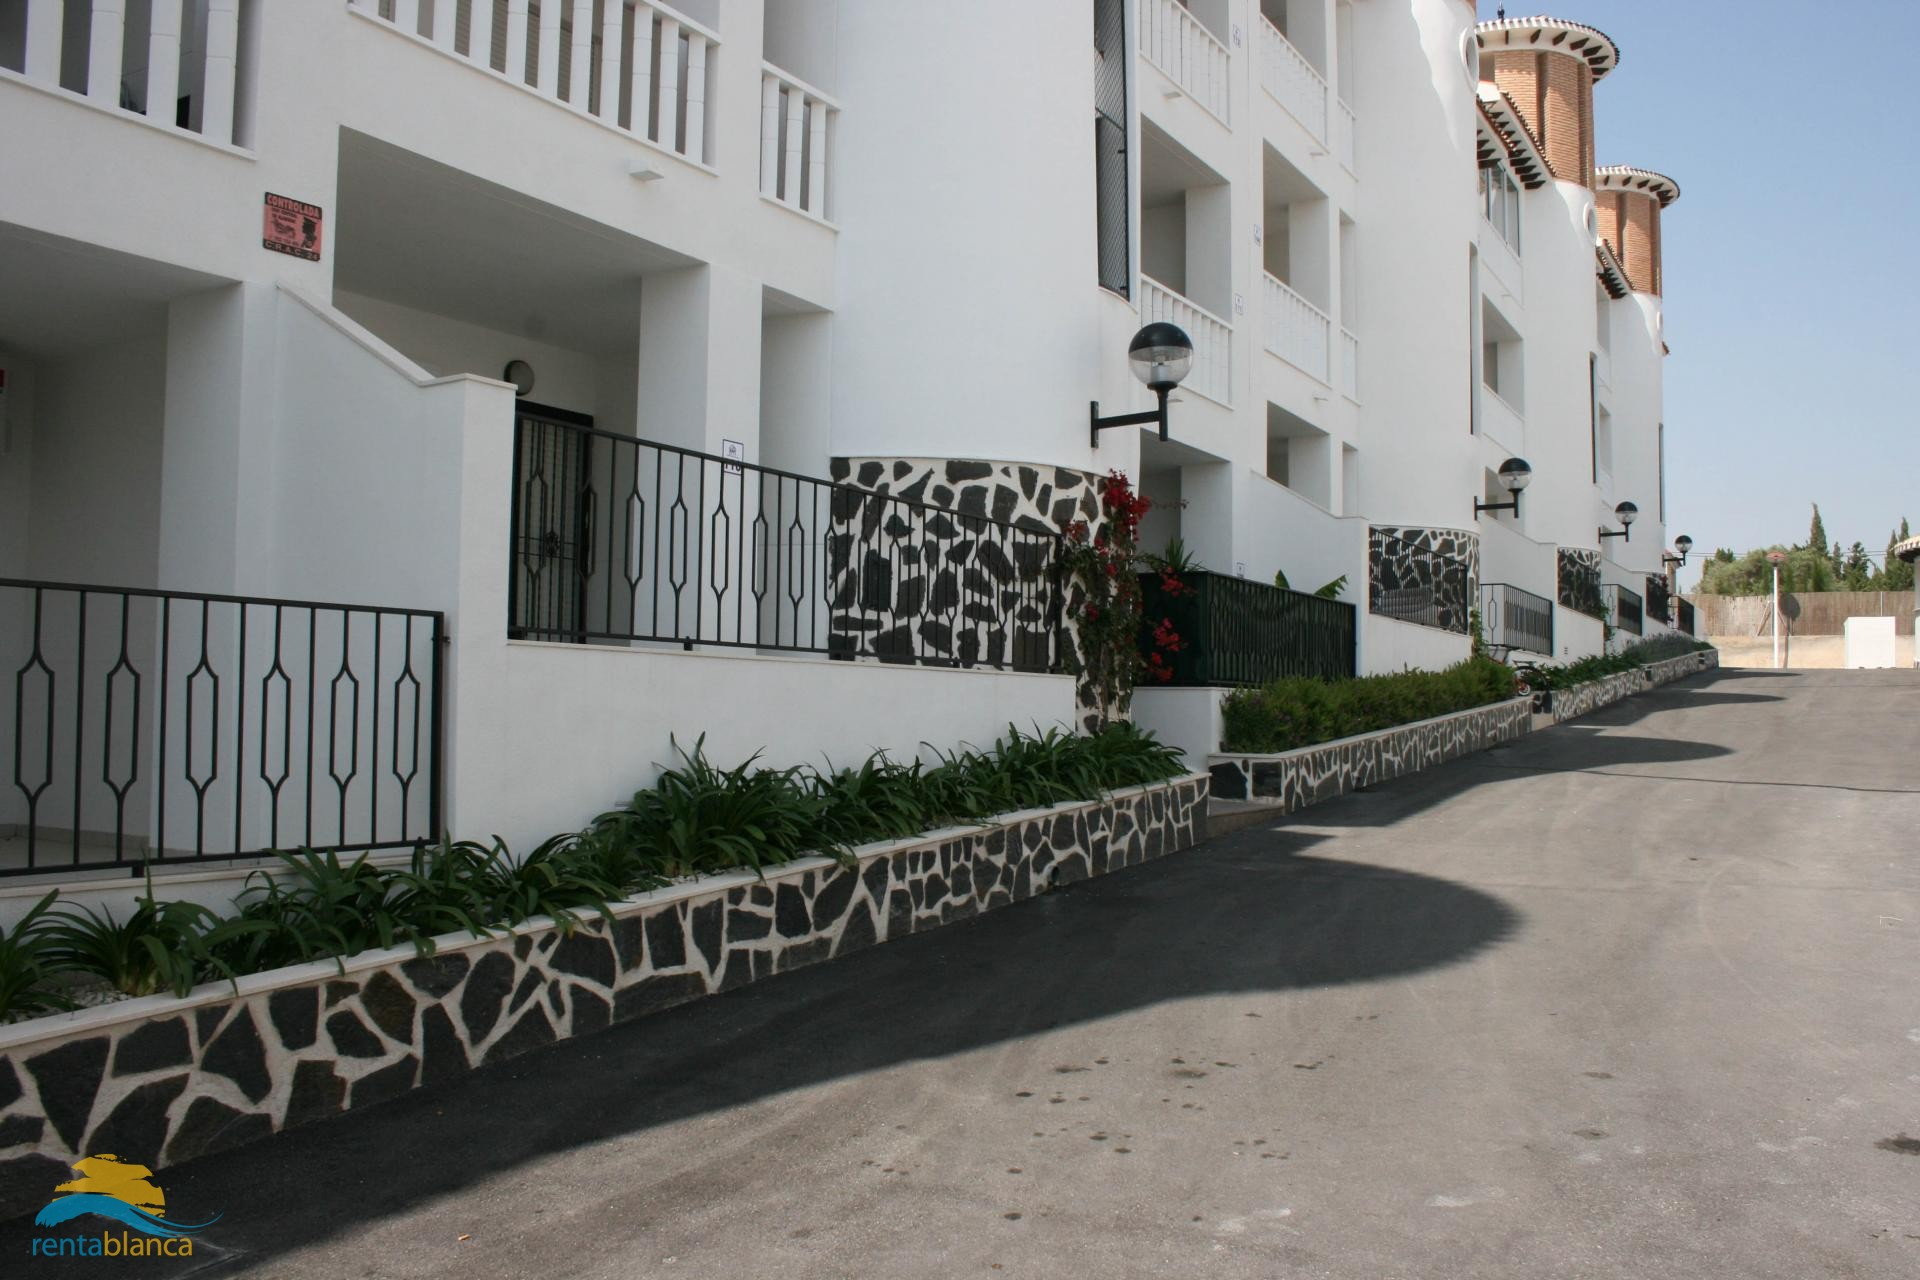 Apartment El Pinet Beach - Rentablanca